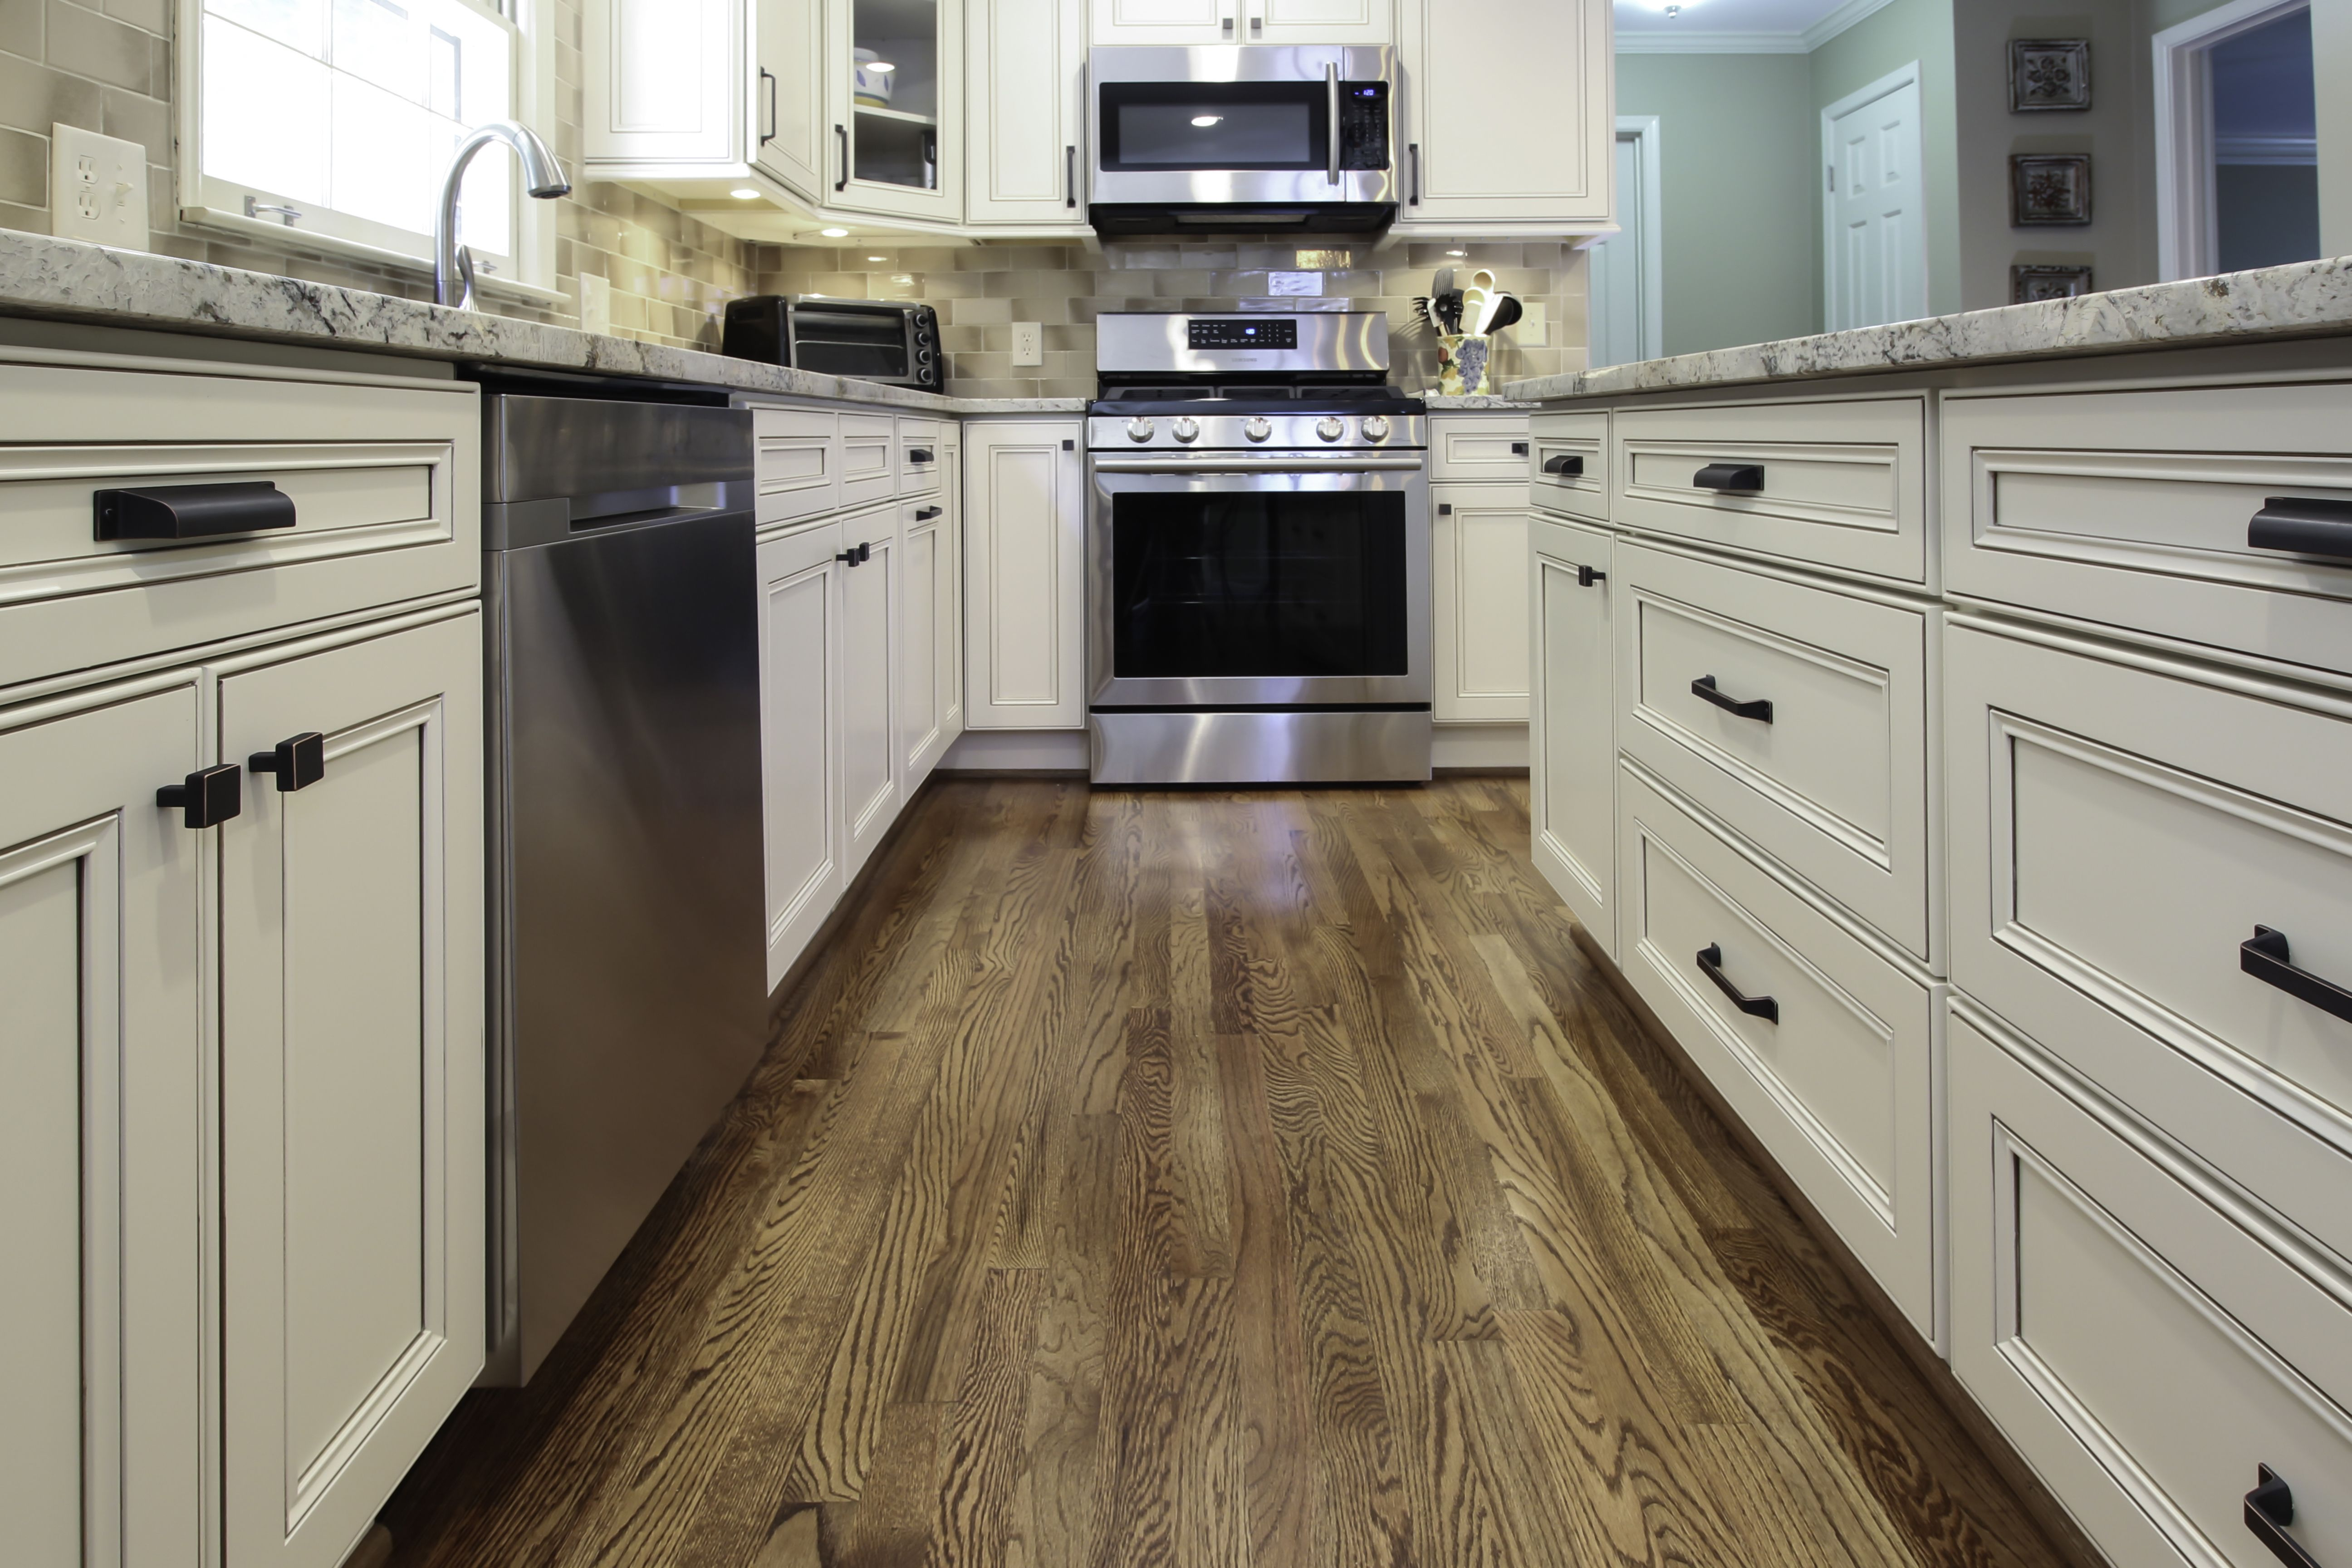 Galley between perimeter and island recessed panel drawer fronts